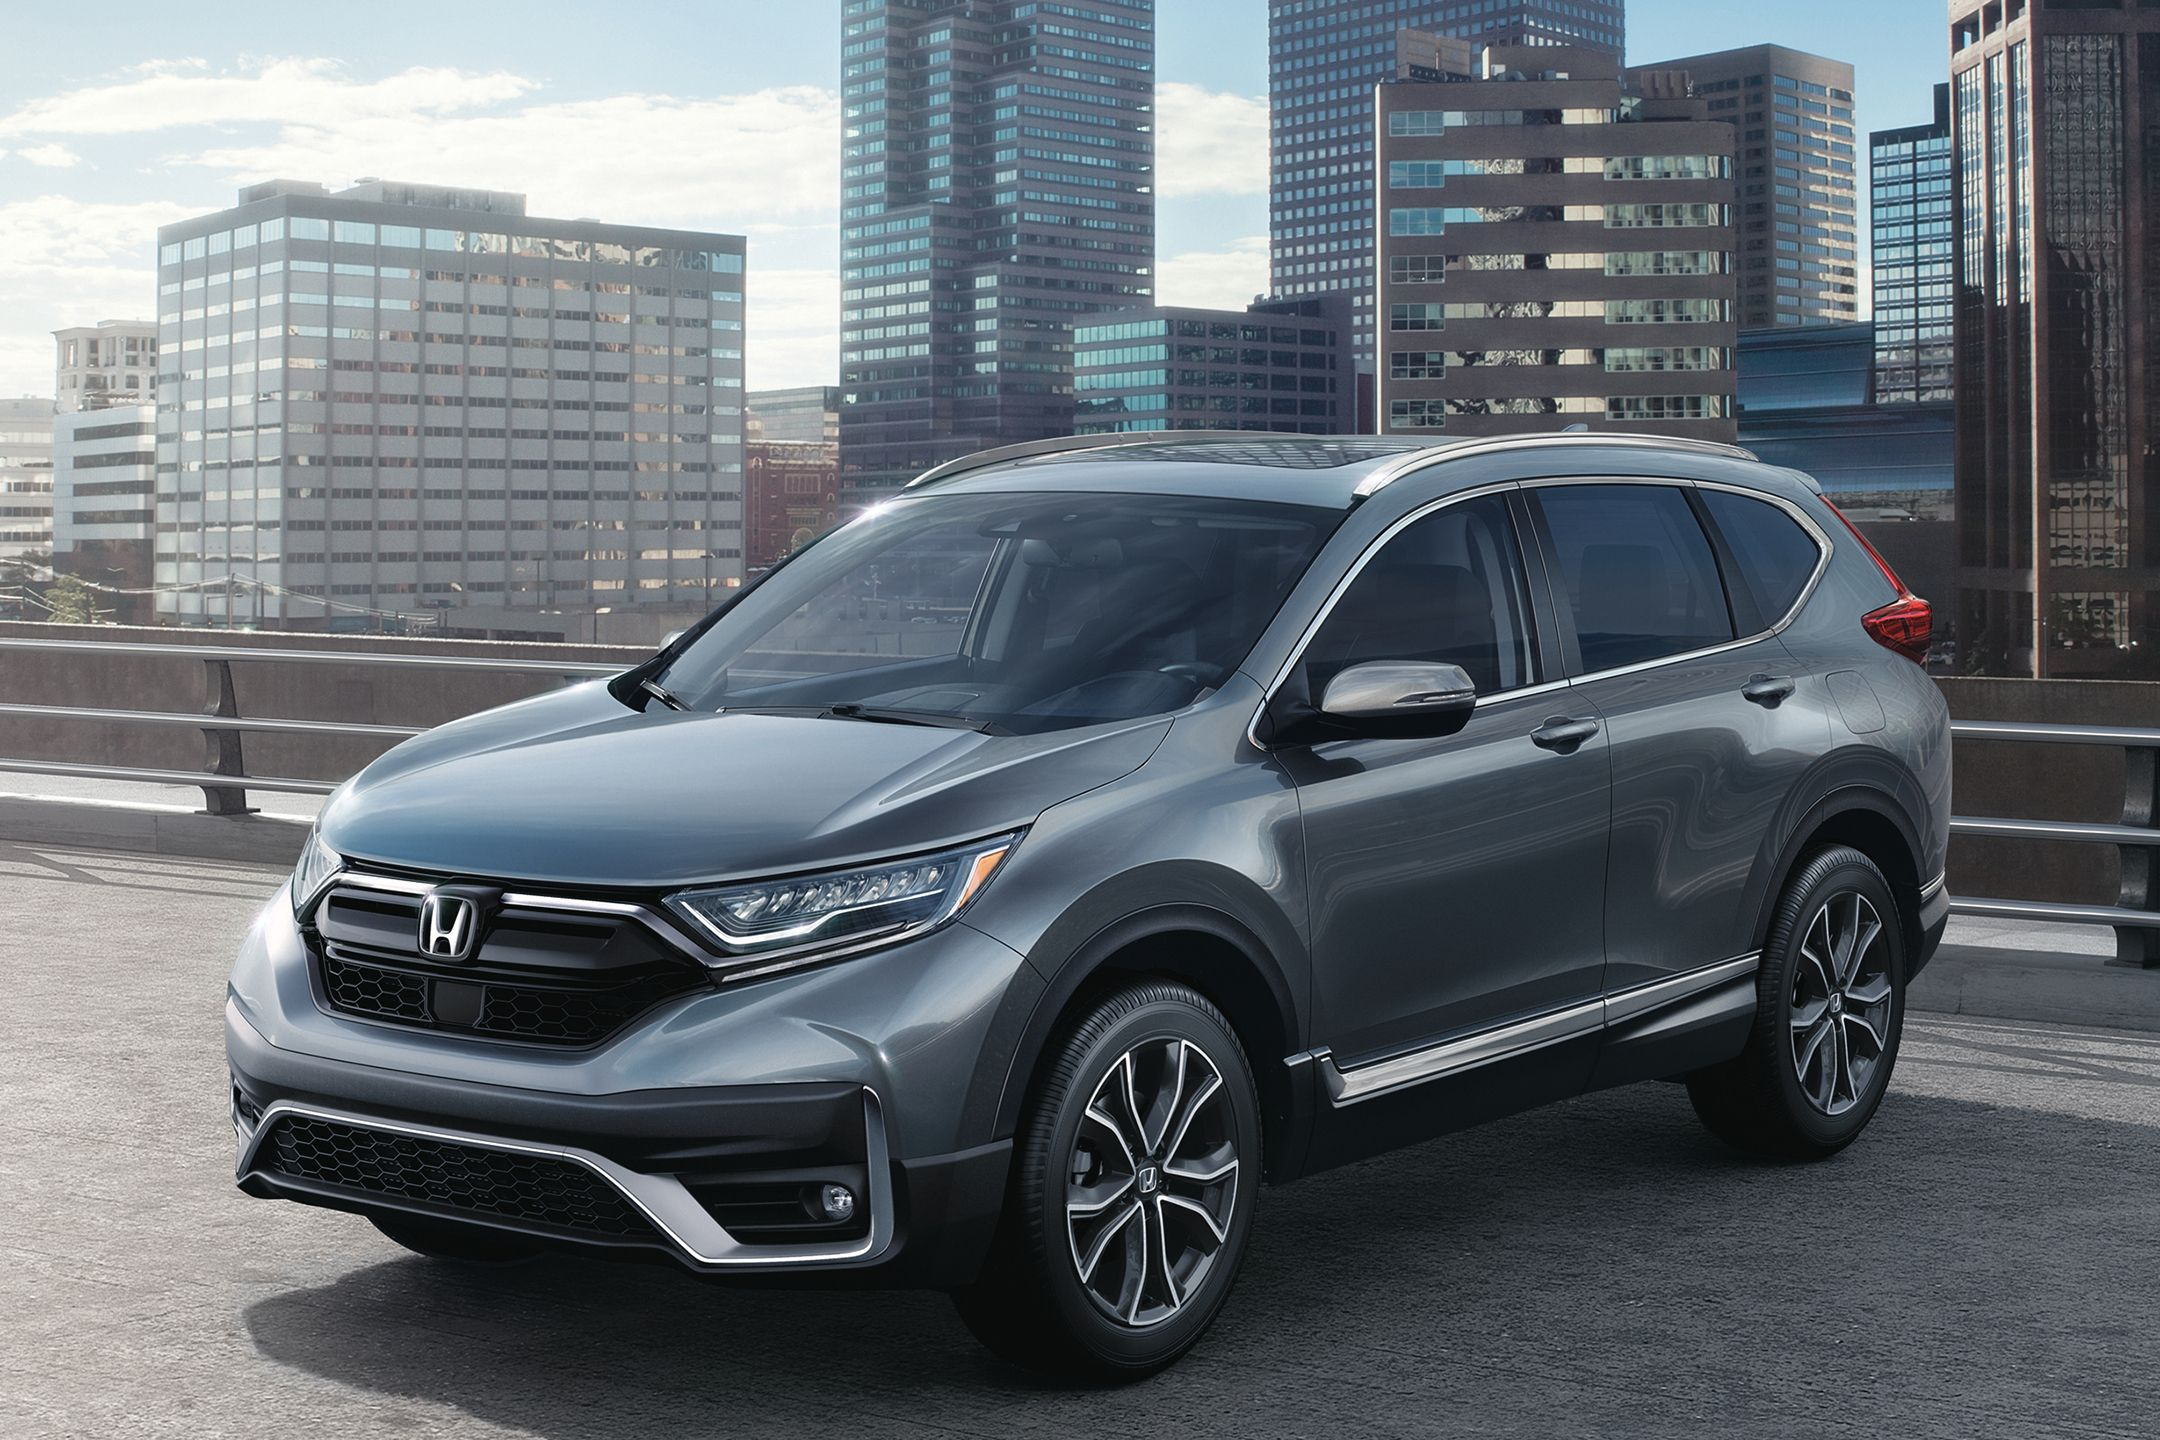 Honda Cr V Which Should You Buy 2019 Or 2020 News From Cars Com In 2020 Honda Crv Honda Crv Touring Honda Cr